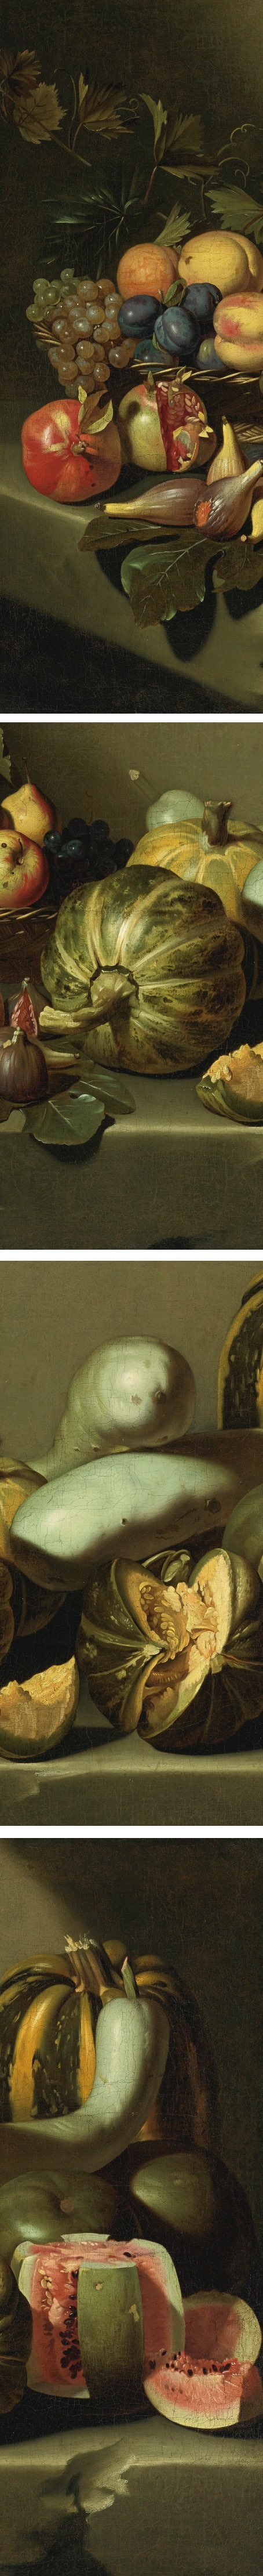 Still Life with Fruit on a Stone Ledge from the Roman School, once attributed to Caravaggio (details)